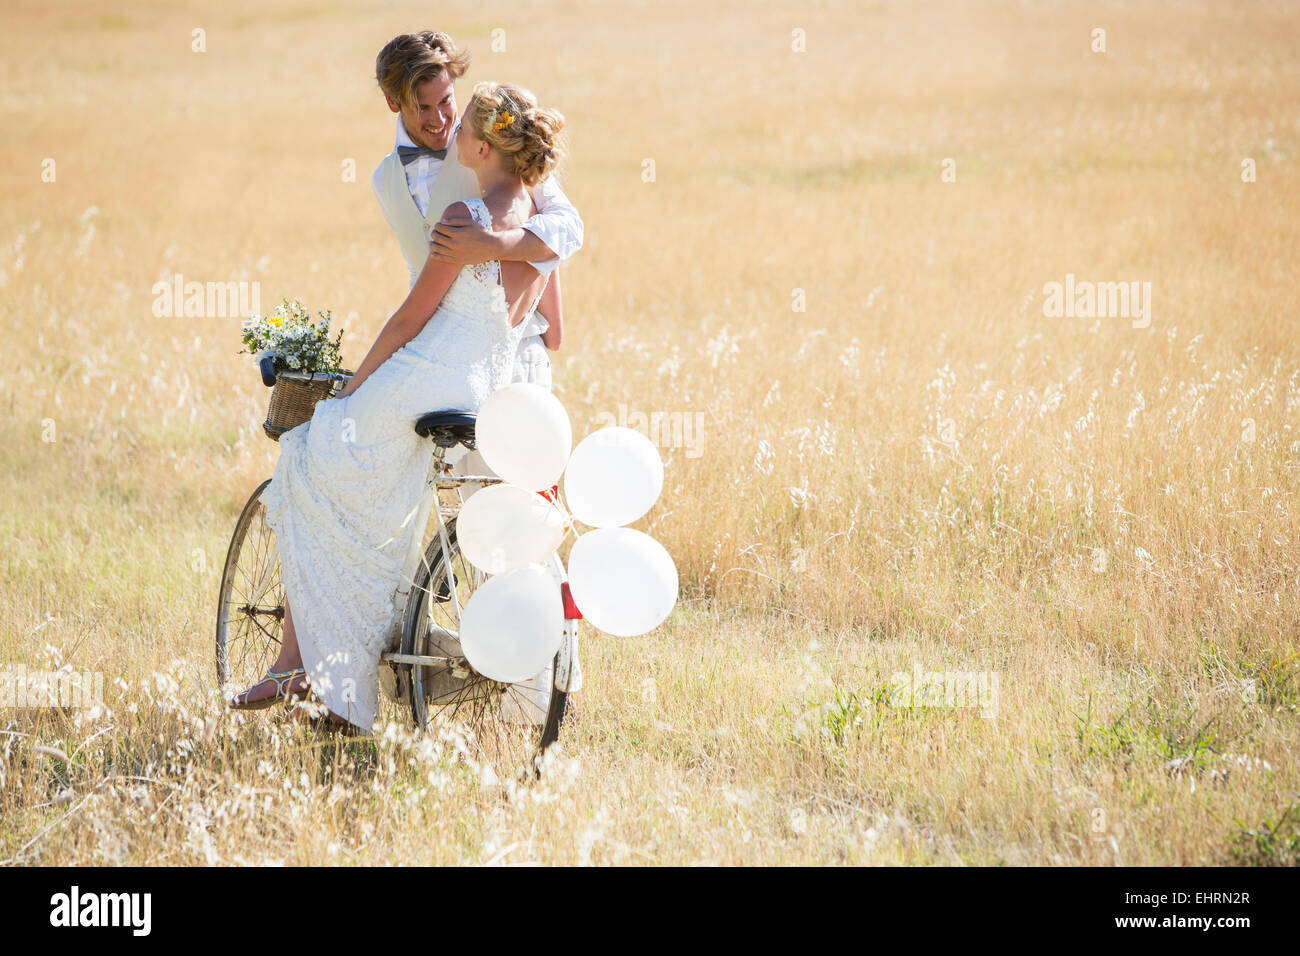 Bride and bridegroom riding bike with balloons attached - Stock Image